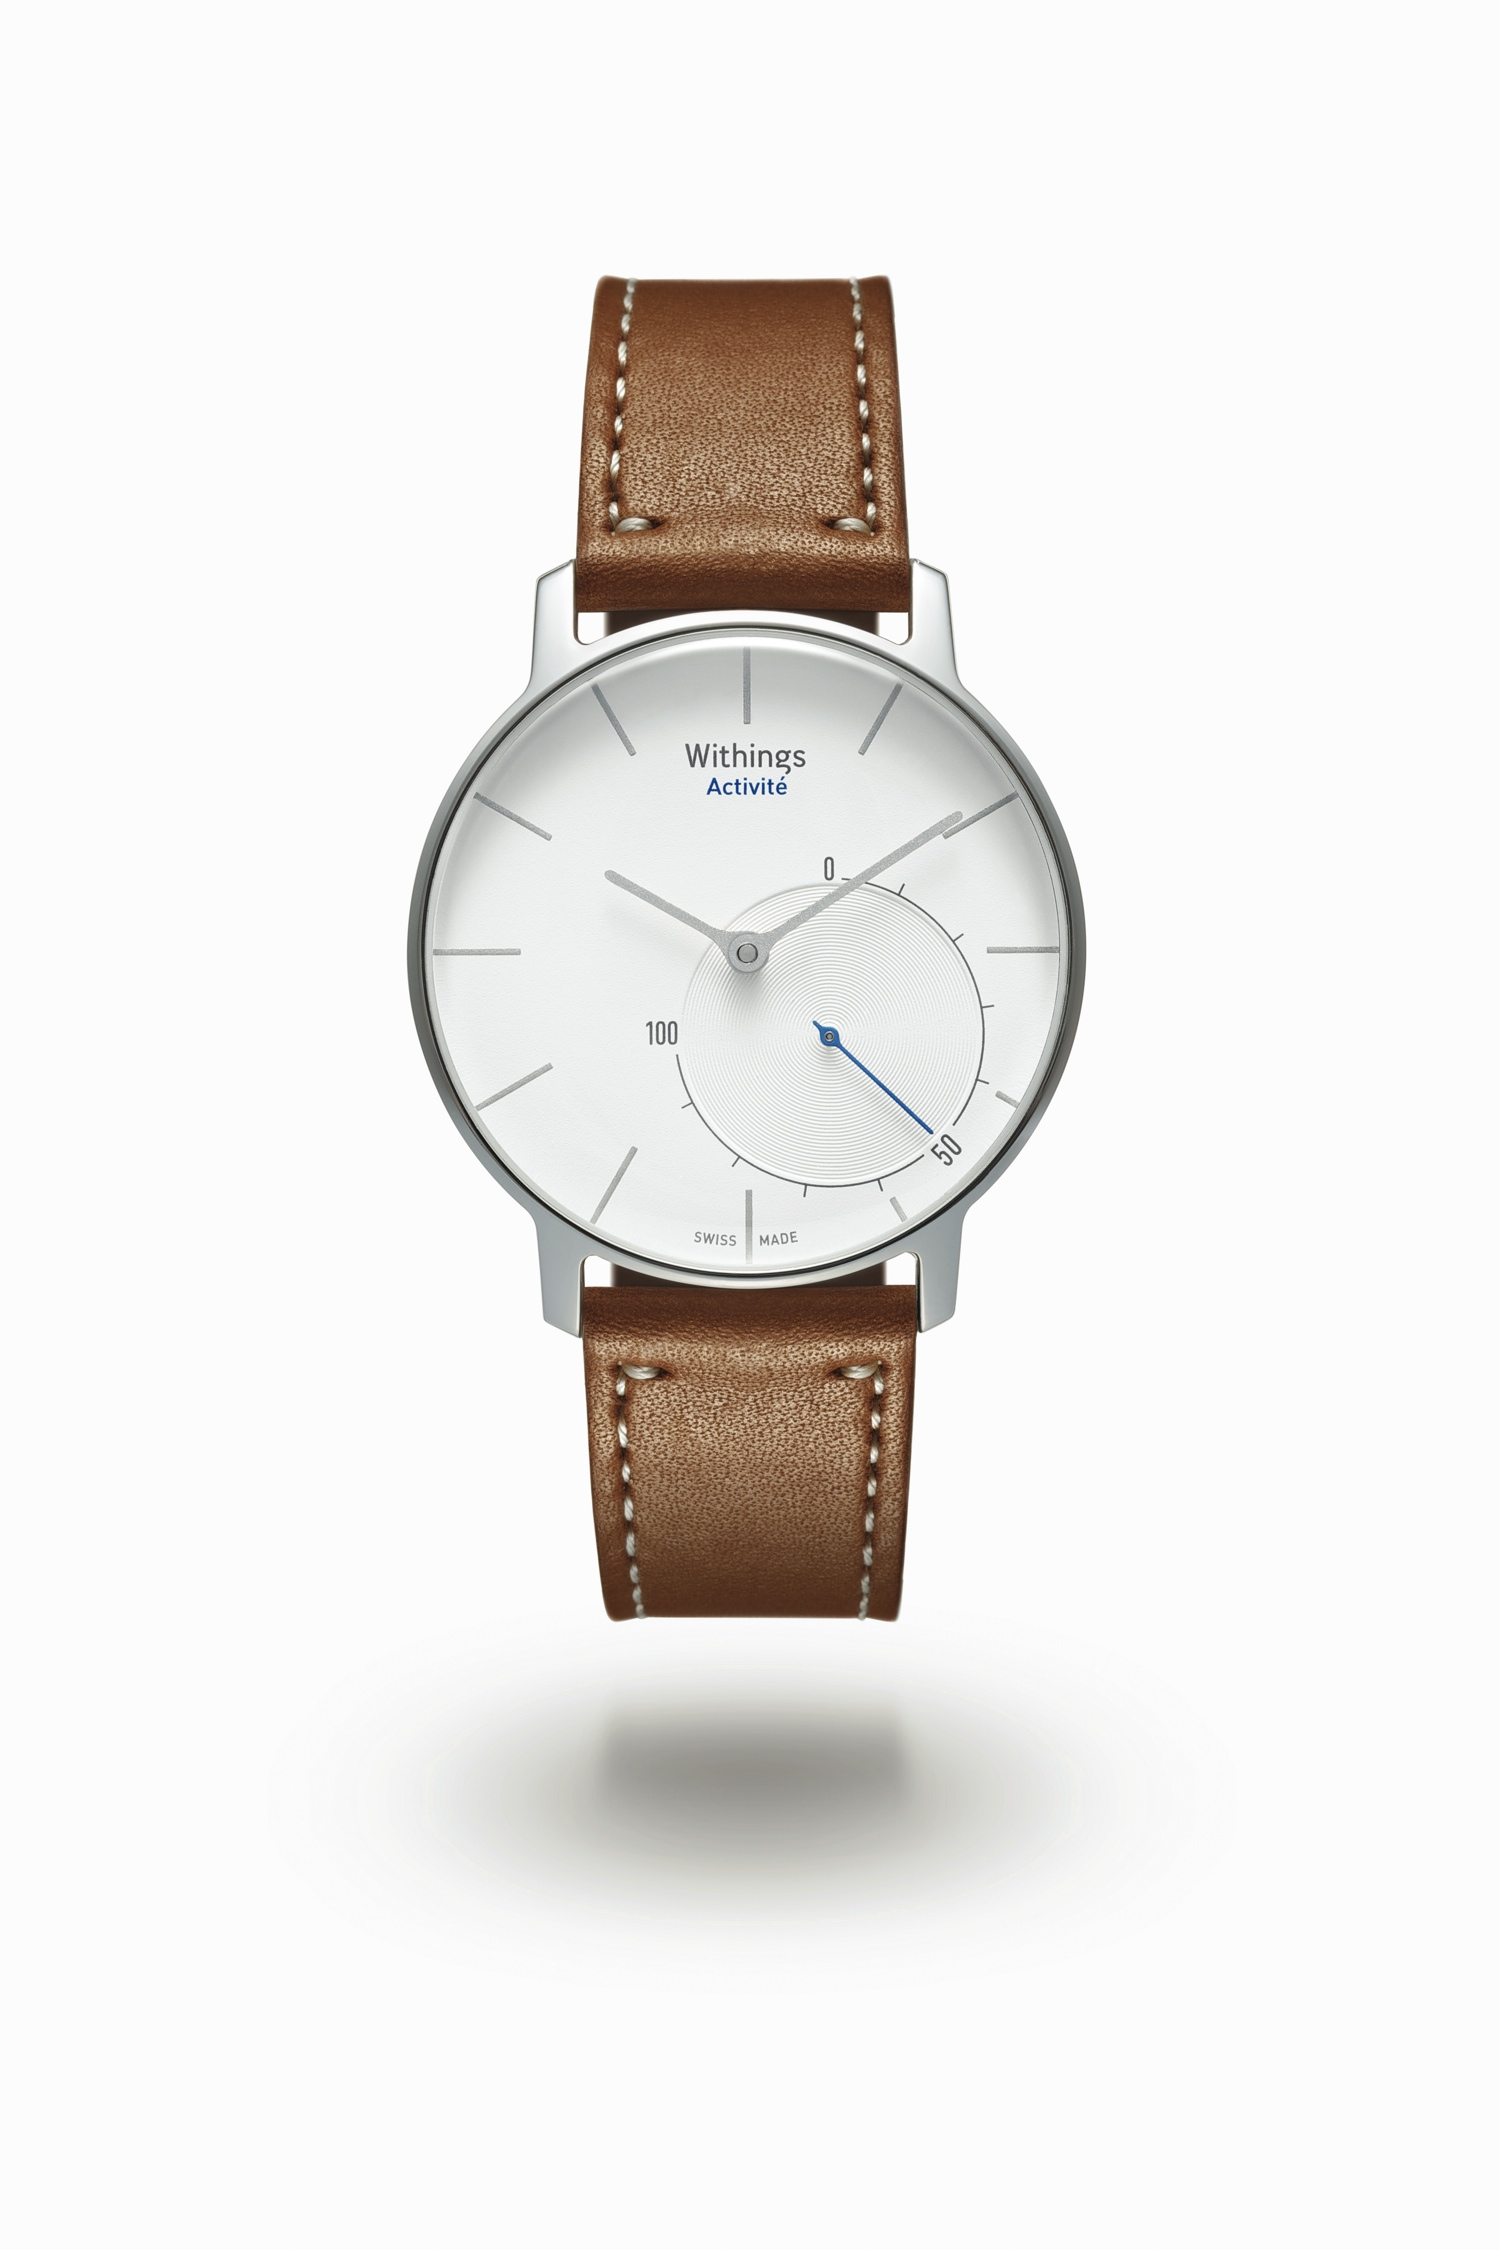 withings-activite-fitness-watch-2